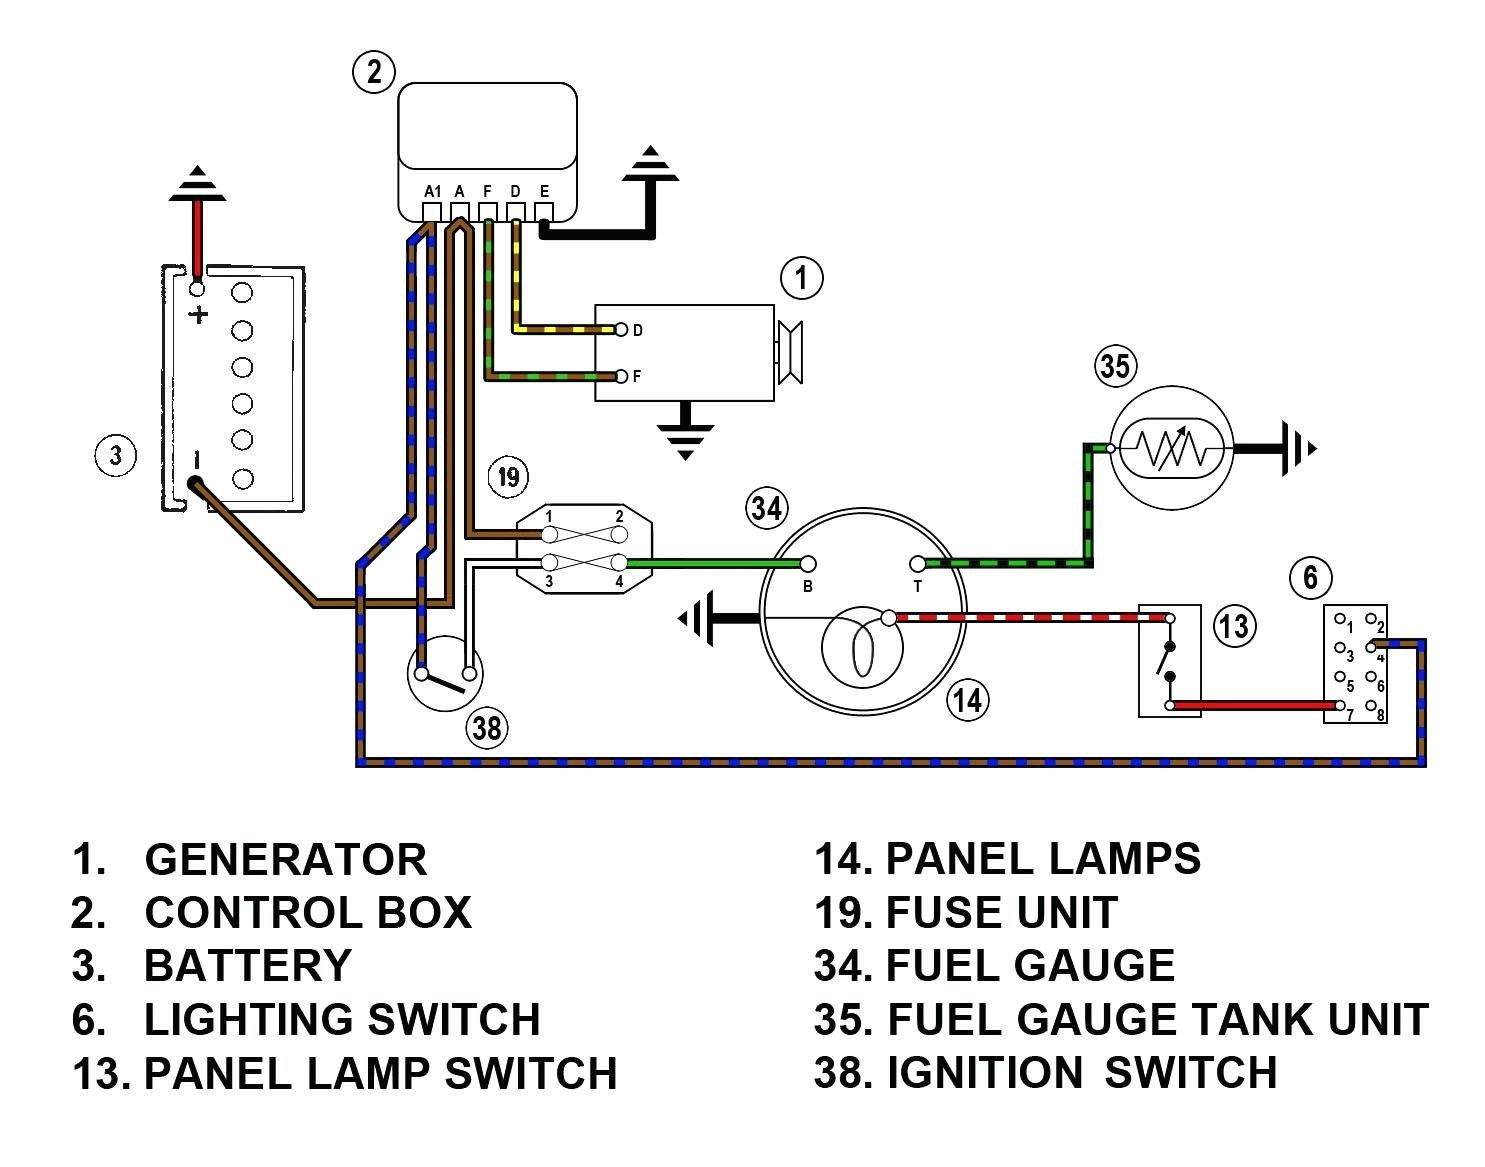 electrical panel wiring diagram software Collection-Electrical Panel Wiring Diagram Beautiful Electrical Panel Wiring Diagram software Fuel Gauge Aem Air 3 Way 11-i